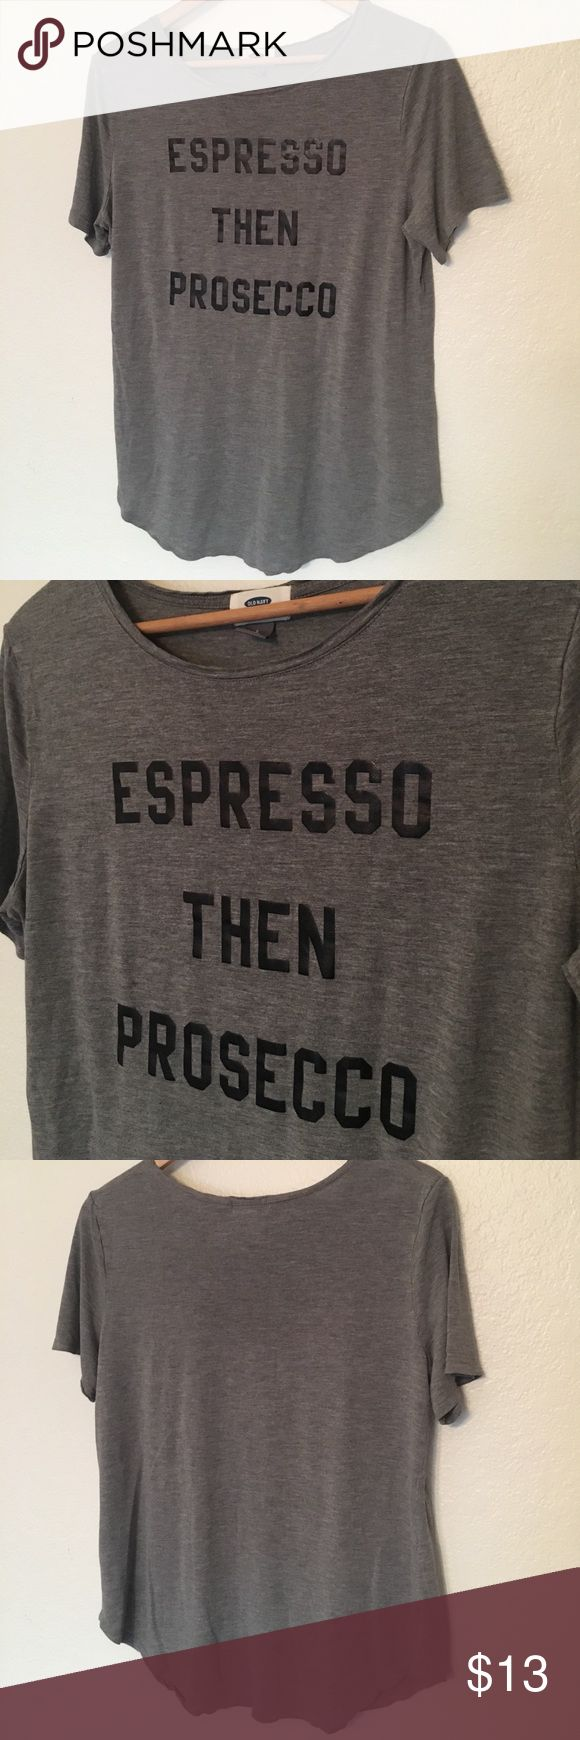 The 25 Best Prosecco Price Ideas On Pinterest